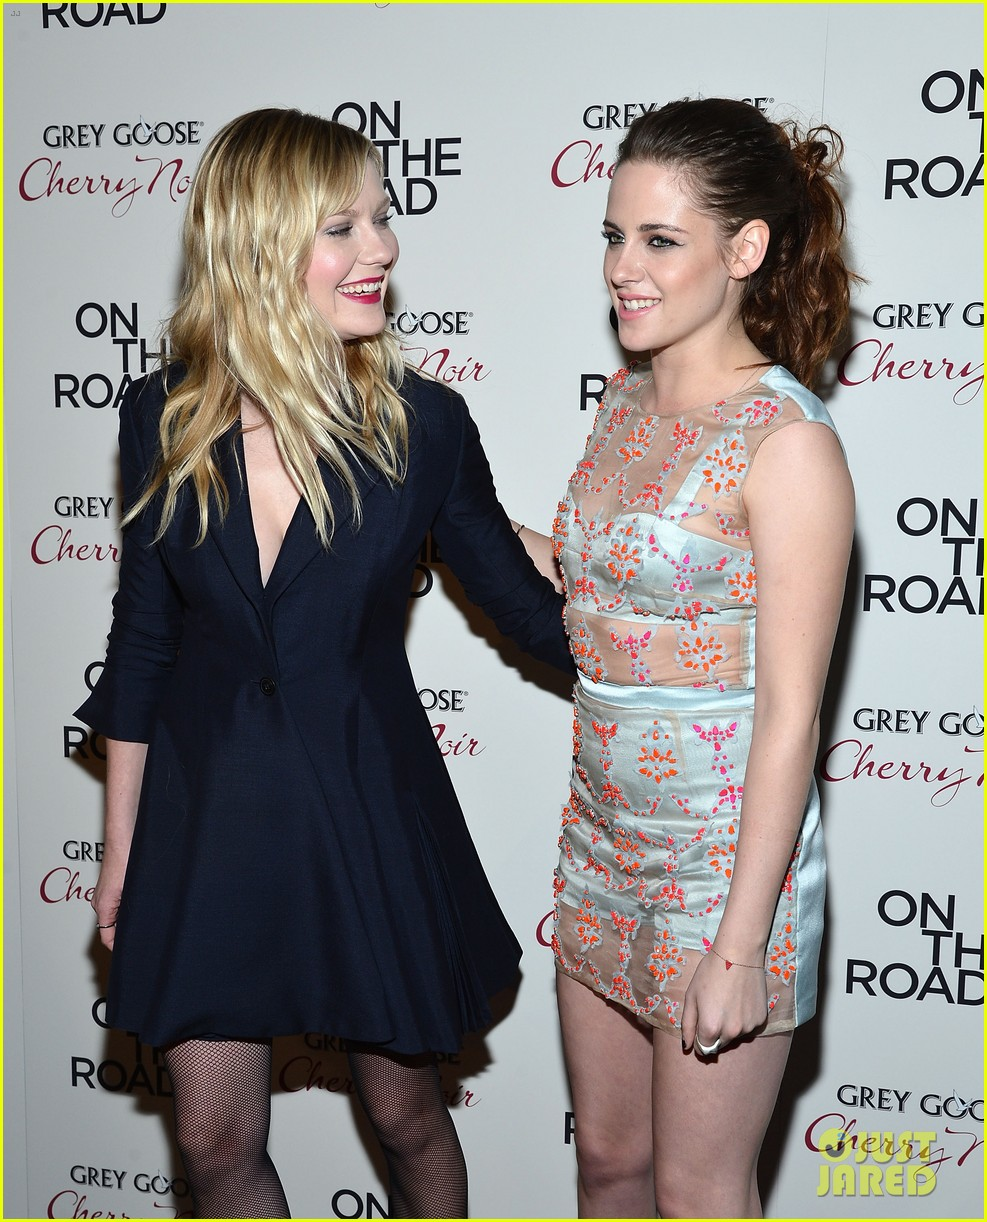 kristen stewart on the road premiere nyc 12